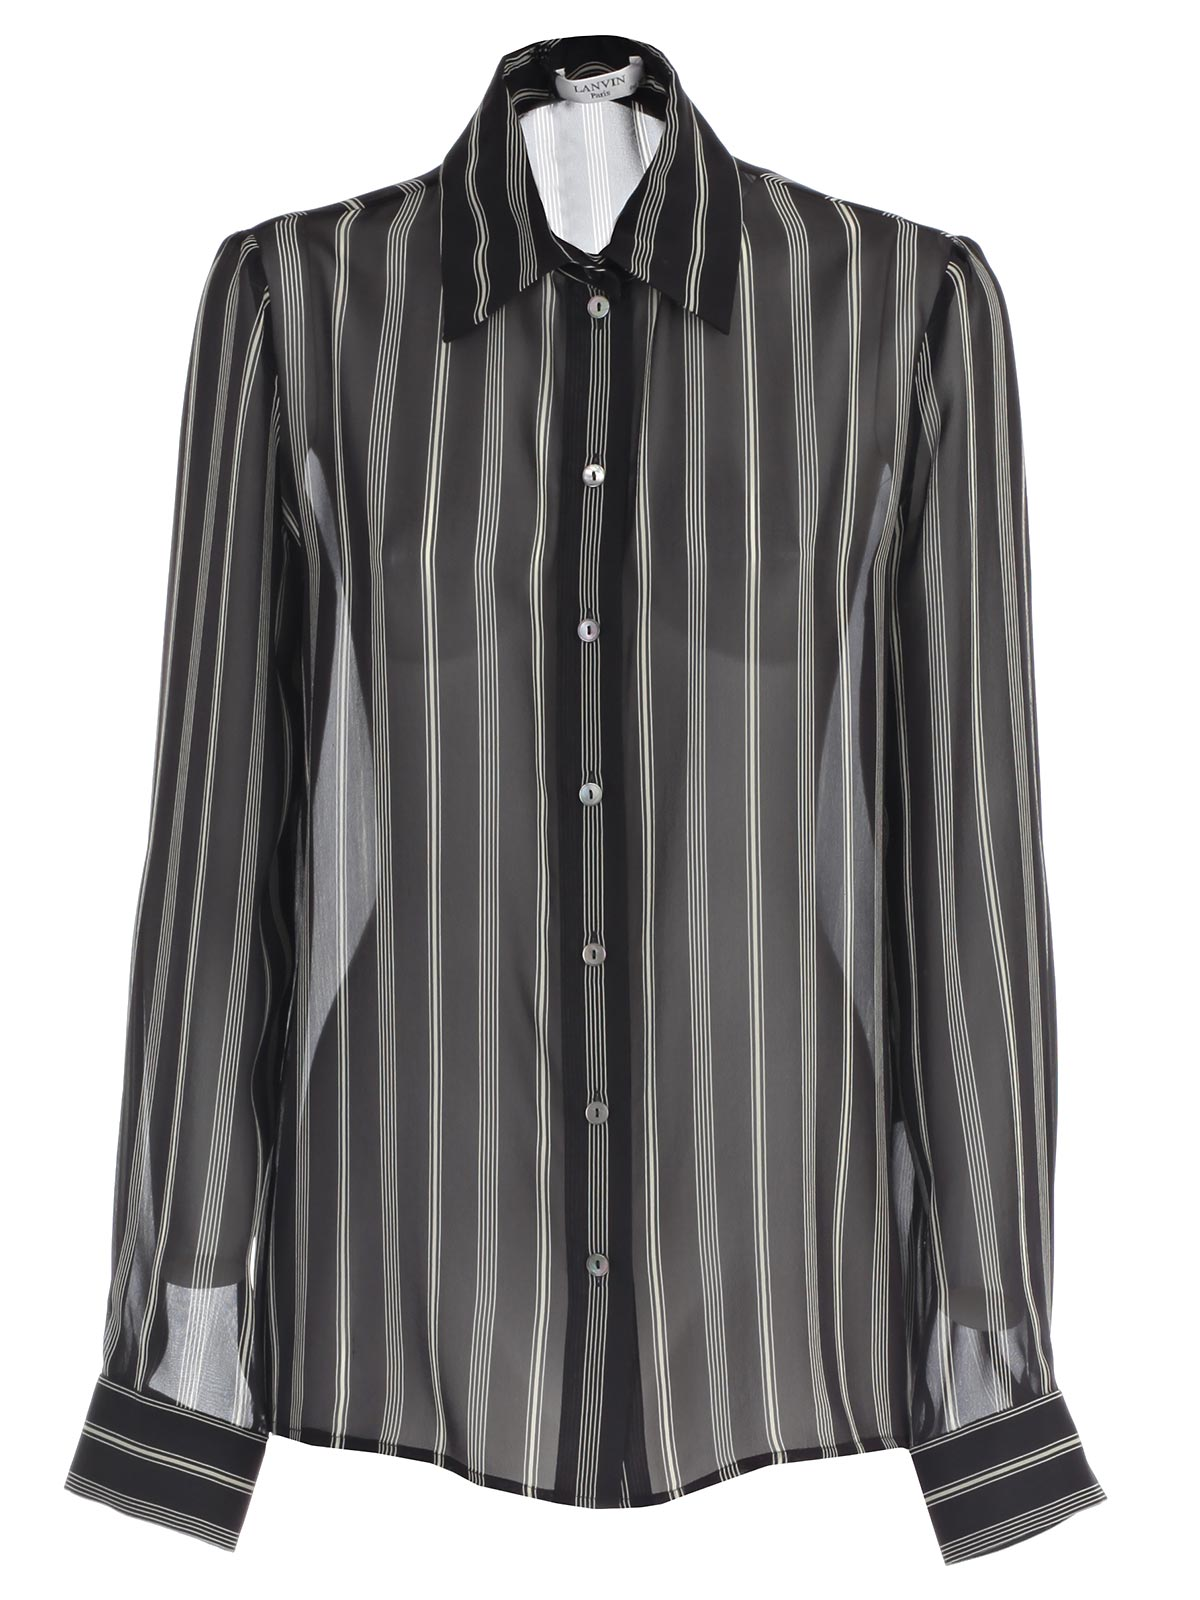 Picture of LANVIN SHIRTS